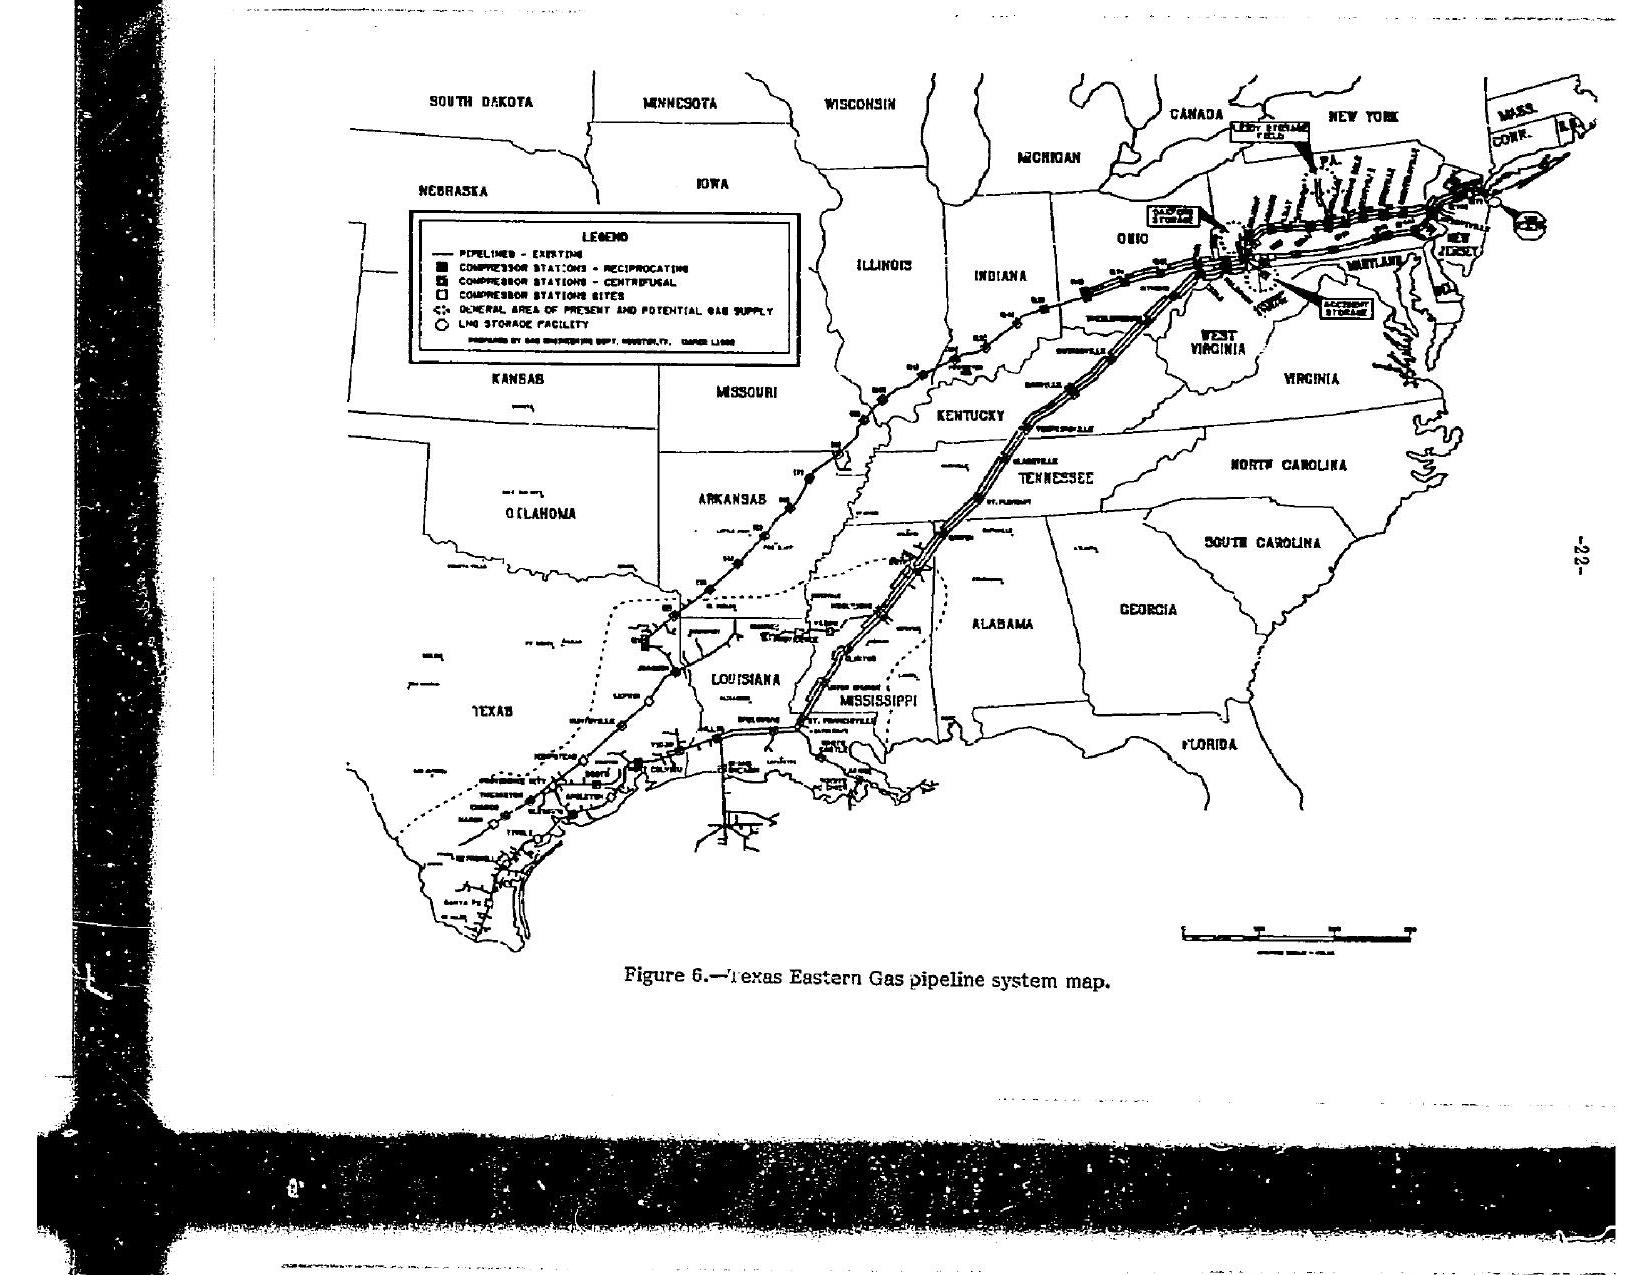 Texas Eastern Gas pipeline system map, in Texas Eastern Gas Pipeline Company Ruptures and Fires, by John S. Quarterman, for SpectraBusters.org, 18 February 1987